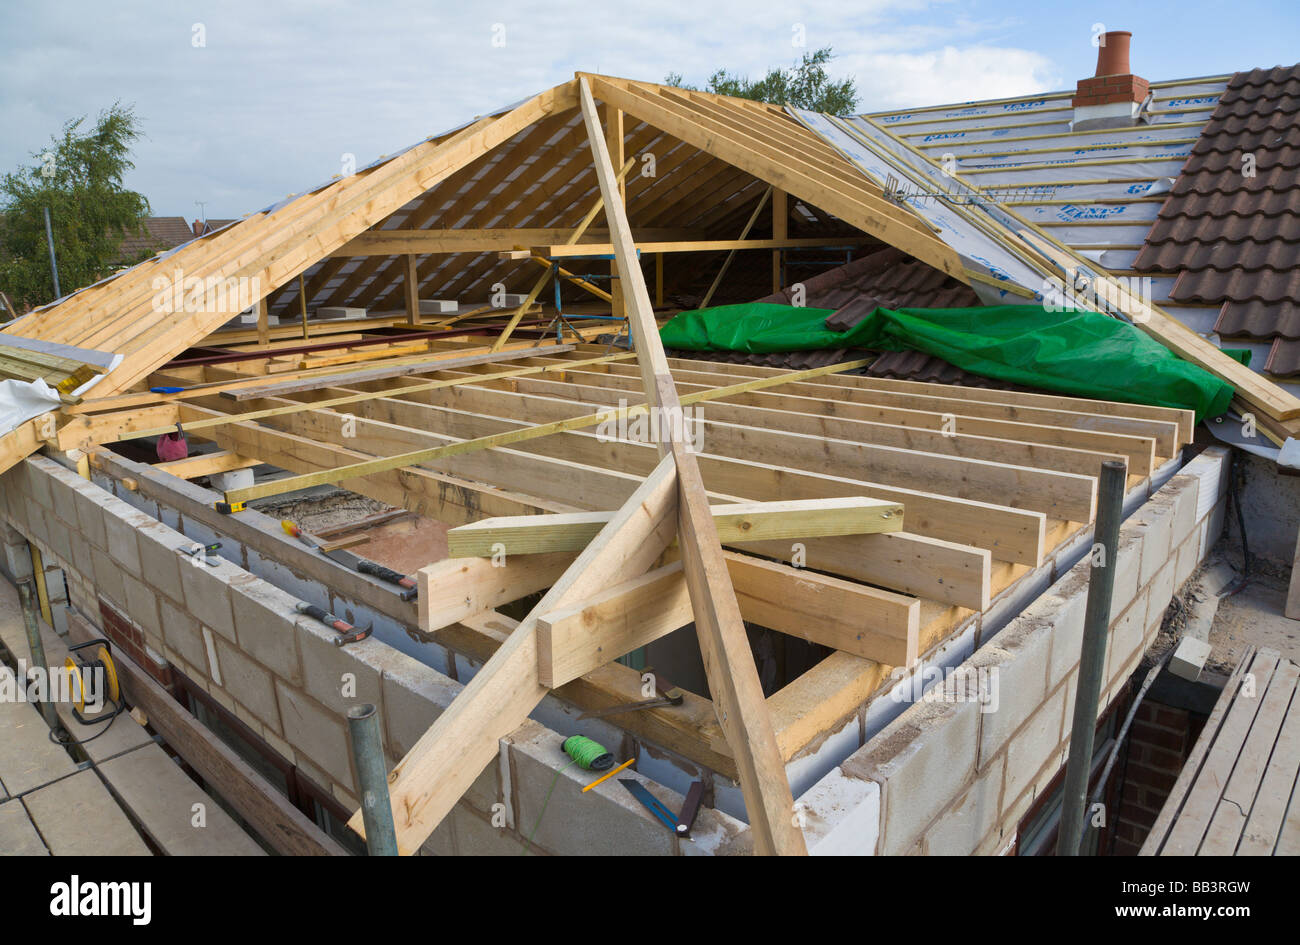 how to put a new roof on a house